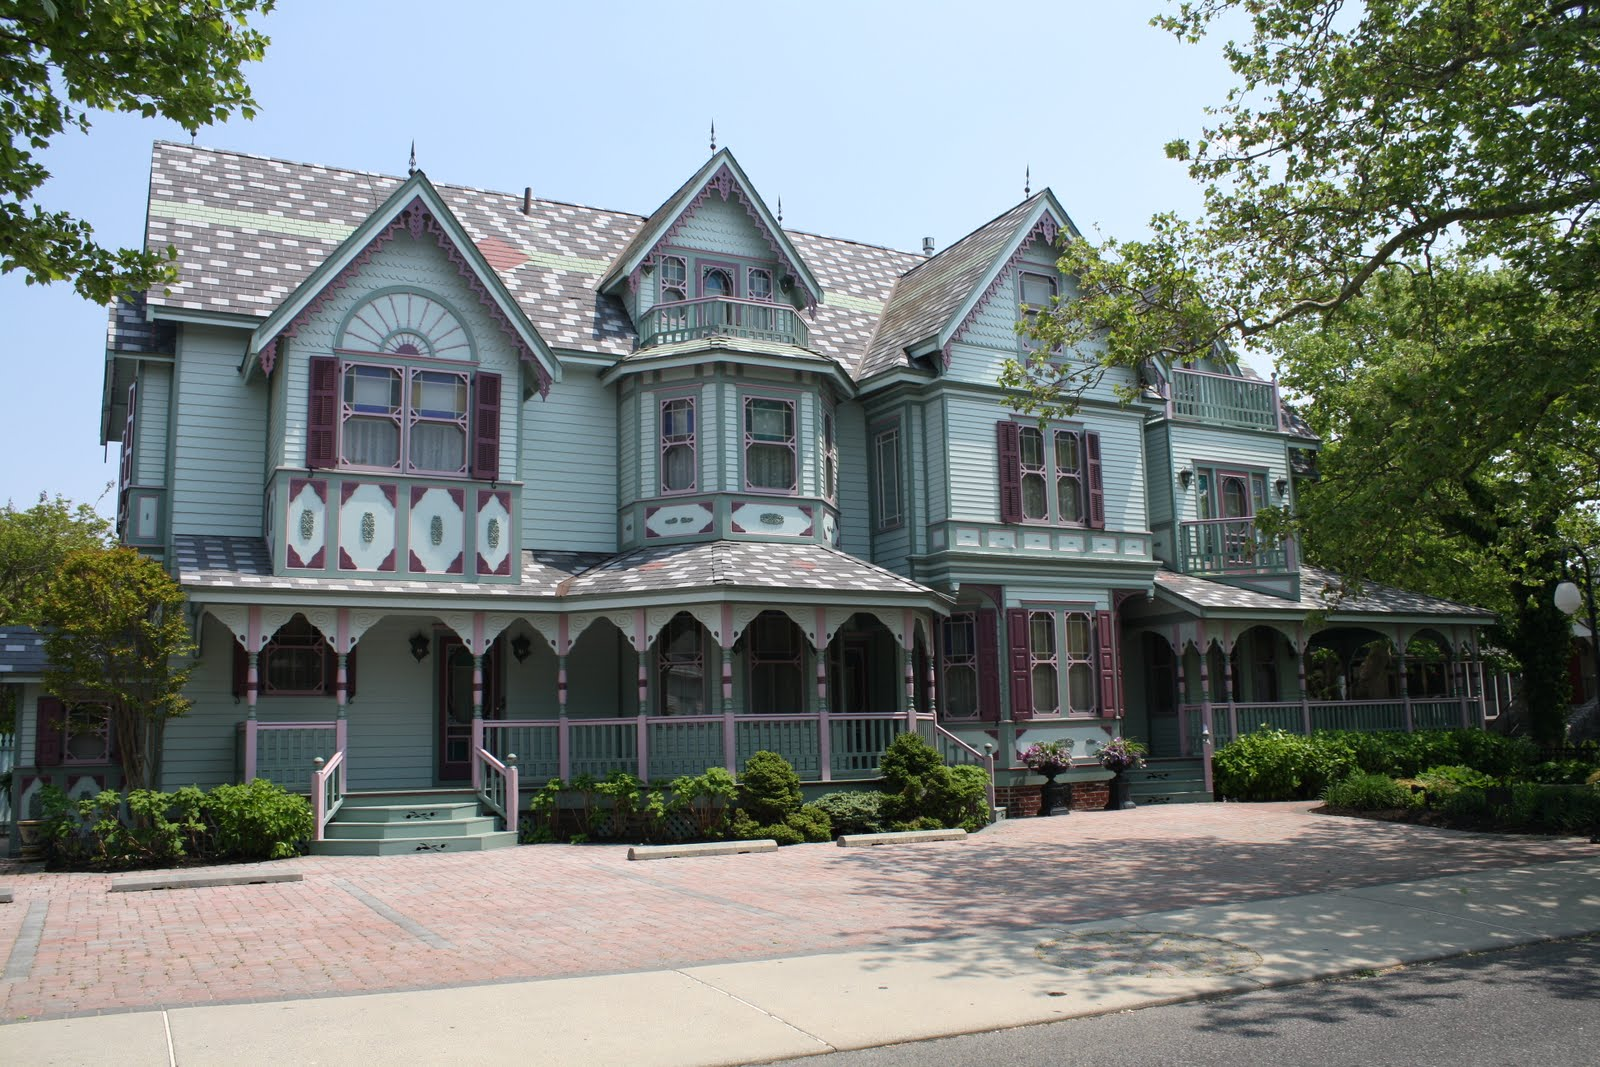 Beautiful Victorian Homes With Flowers In The Front Yard